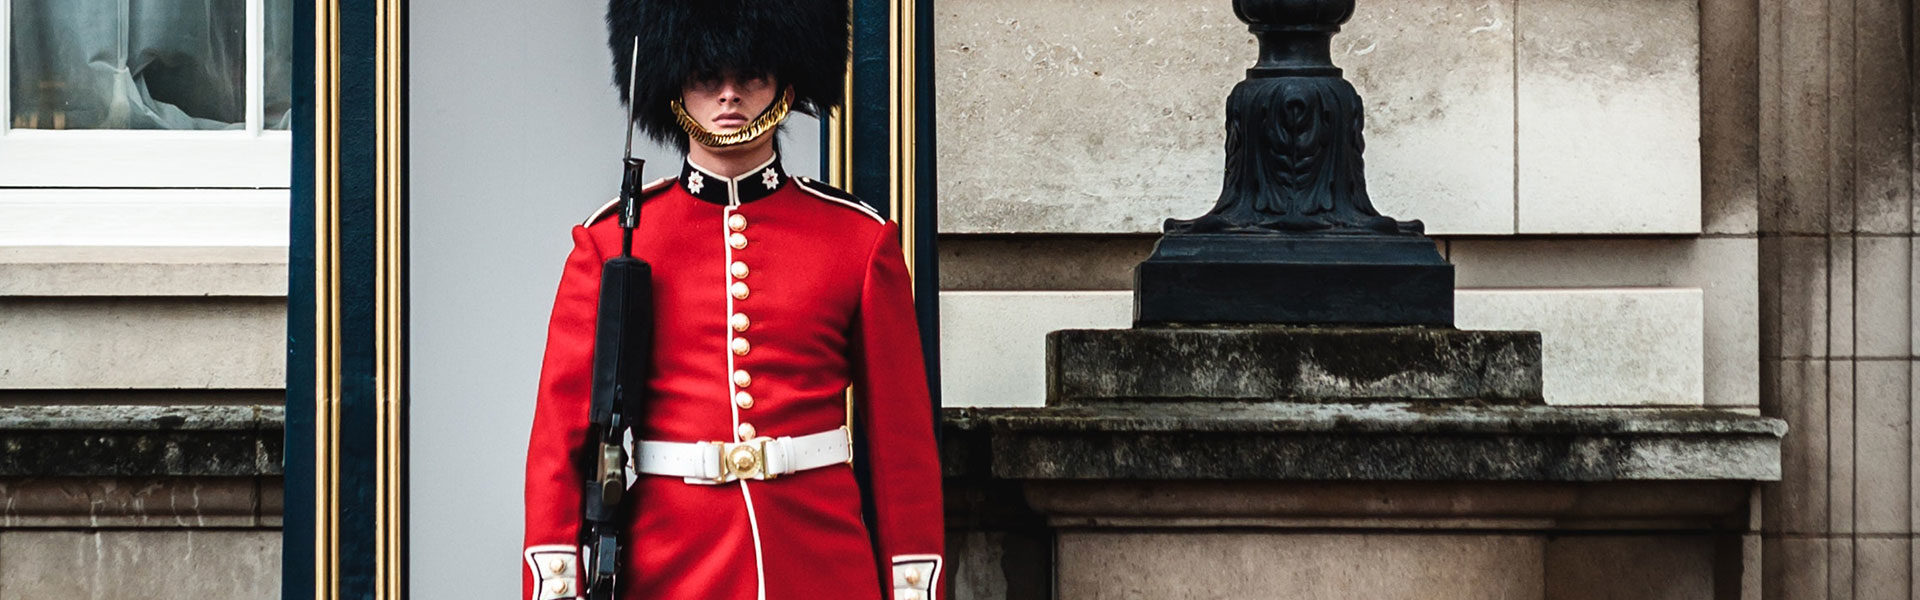 london queens guard